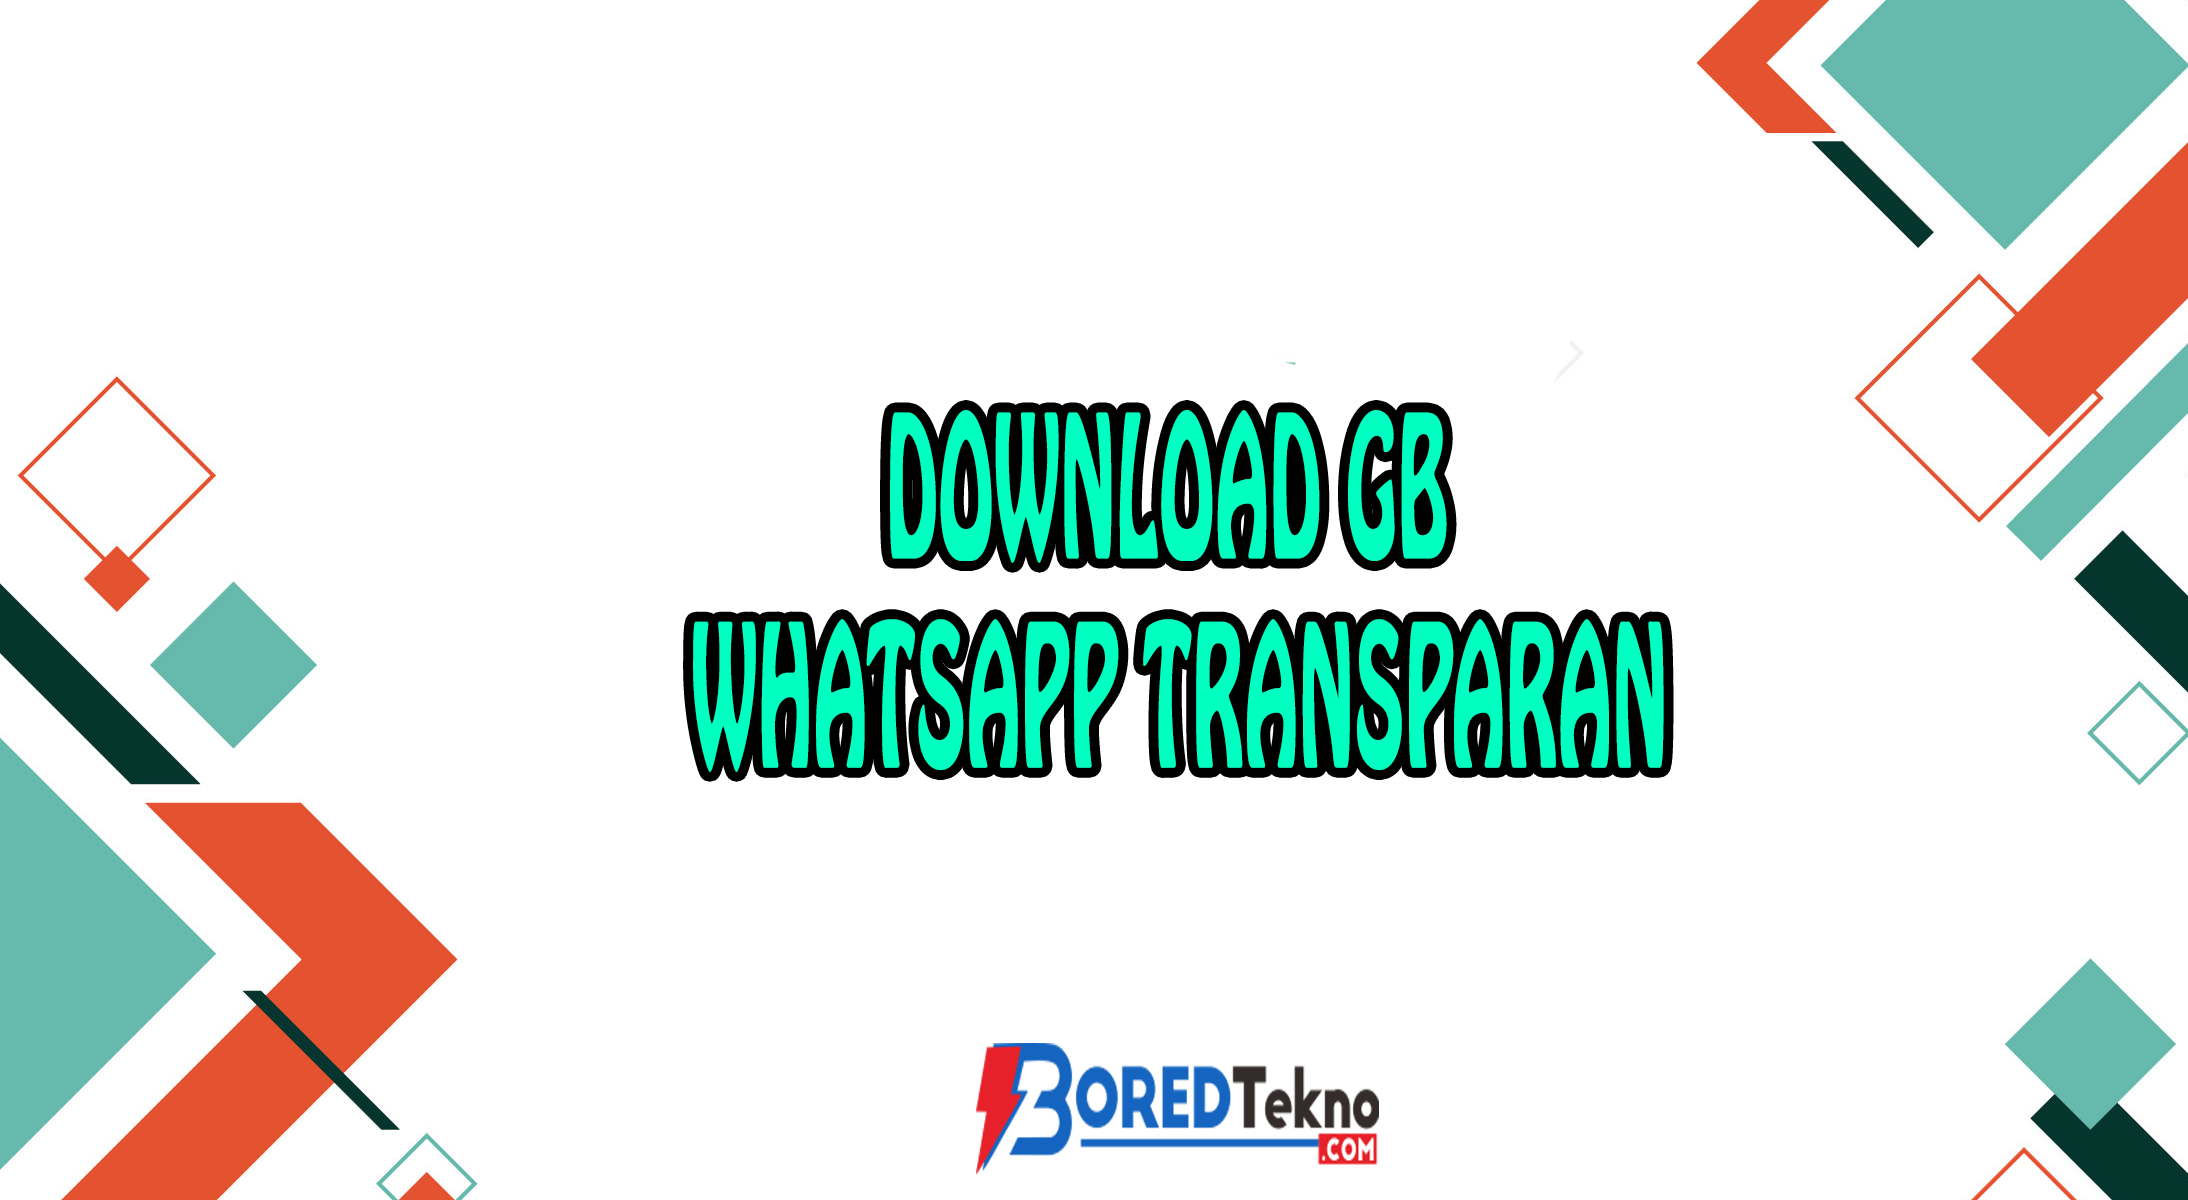 Download GB Whatsapp Transparan